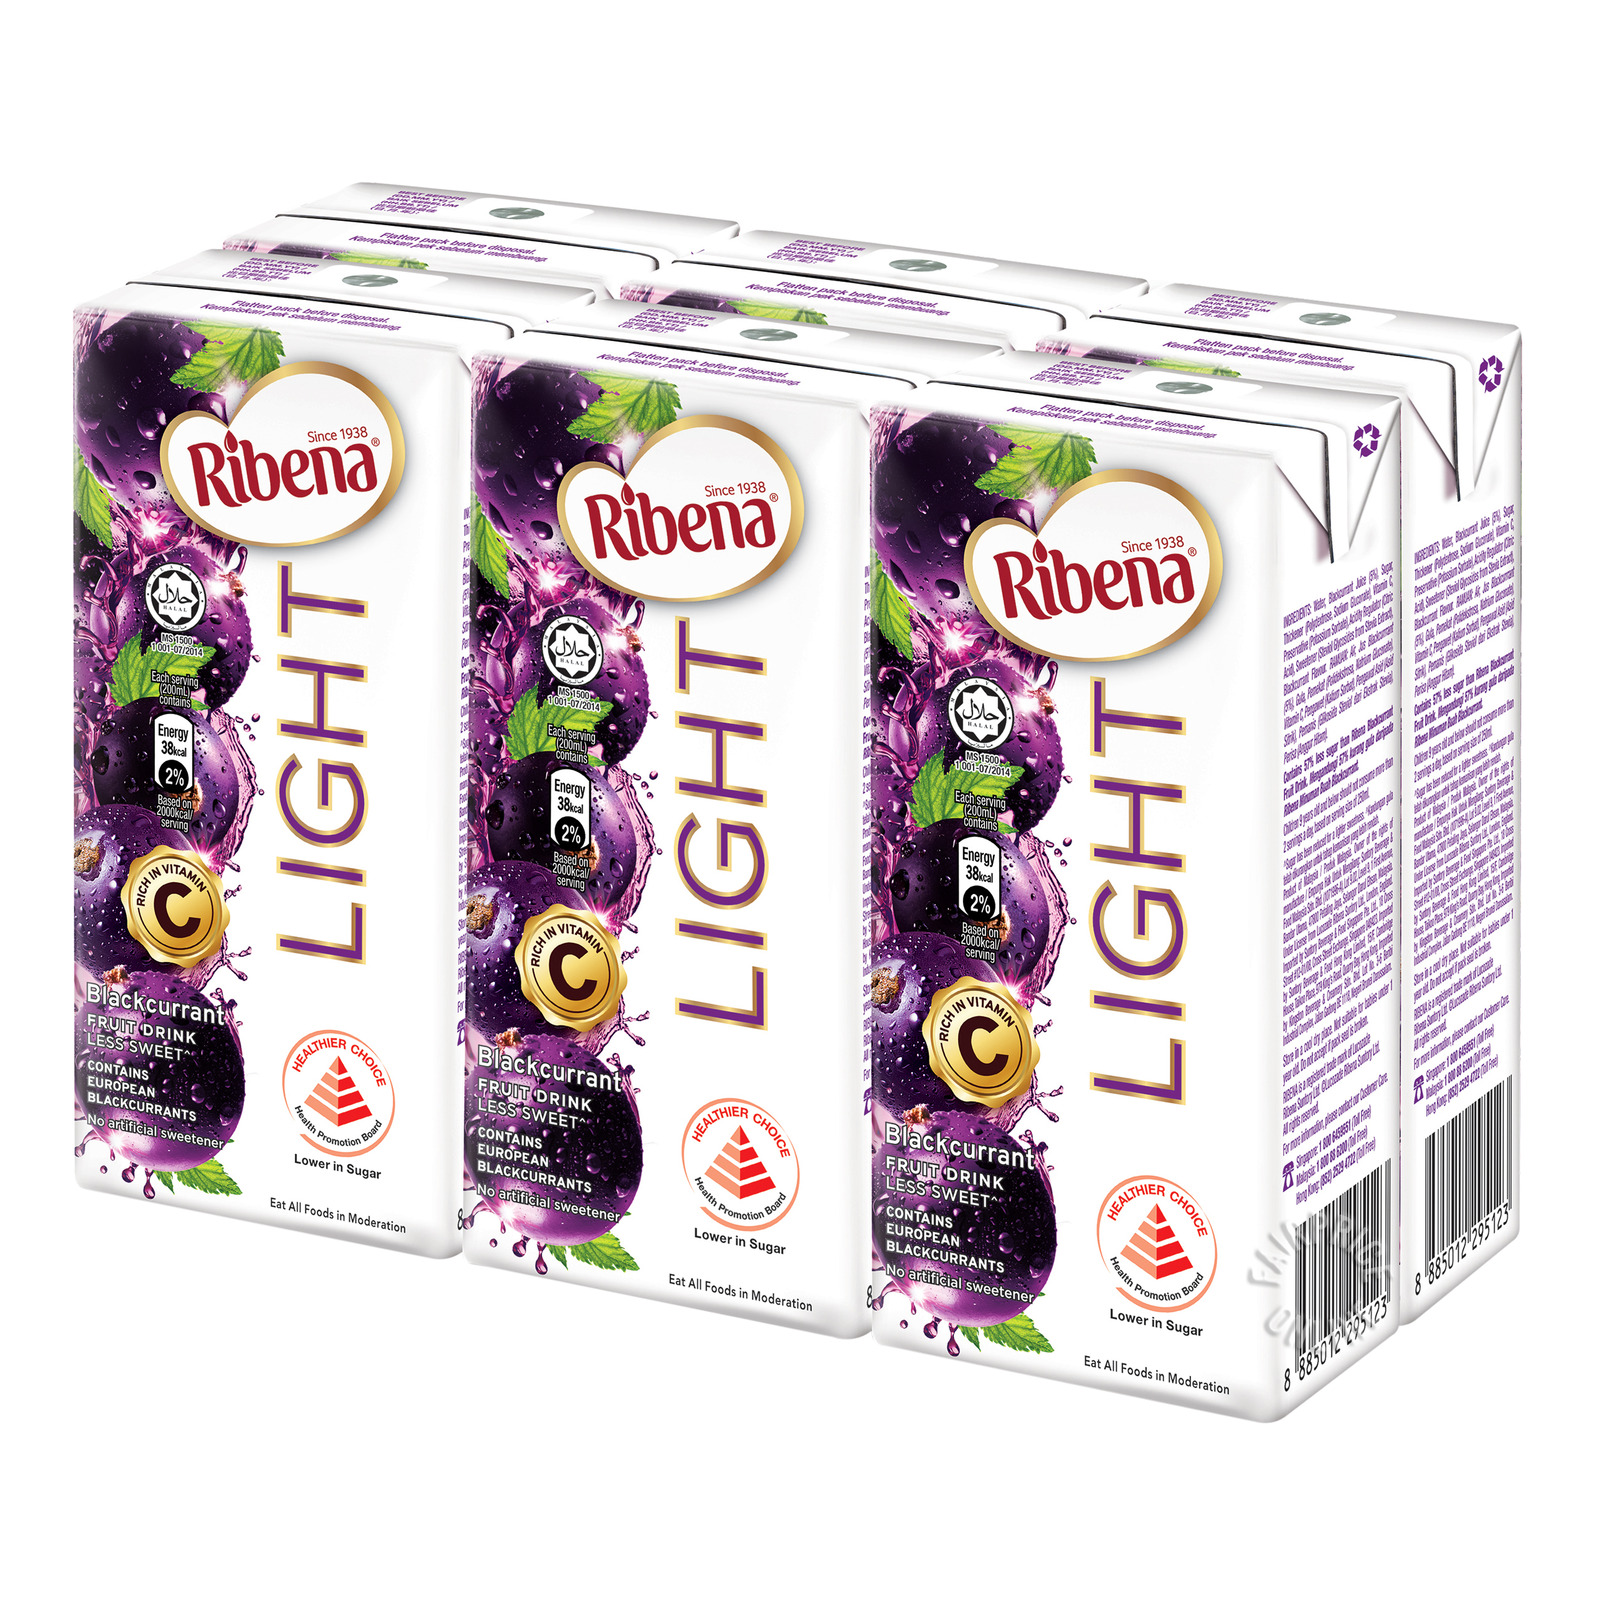 Ribena Blackcurrant Fruit Drink Packet - Light